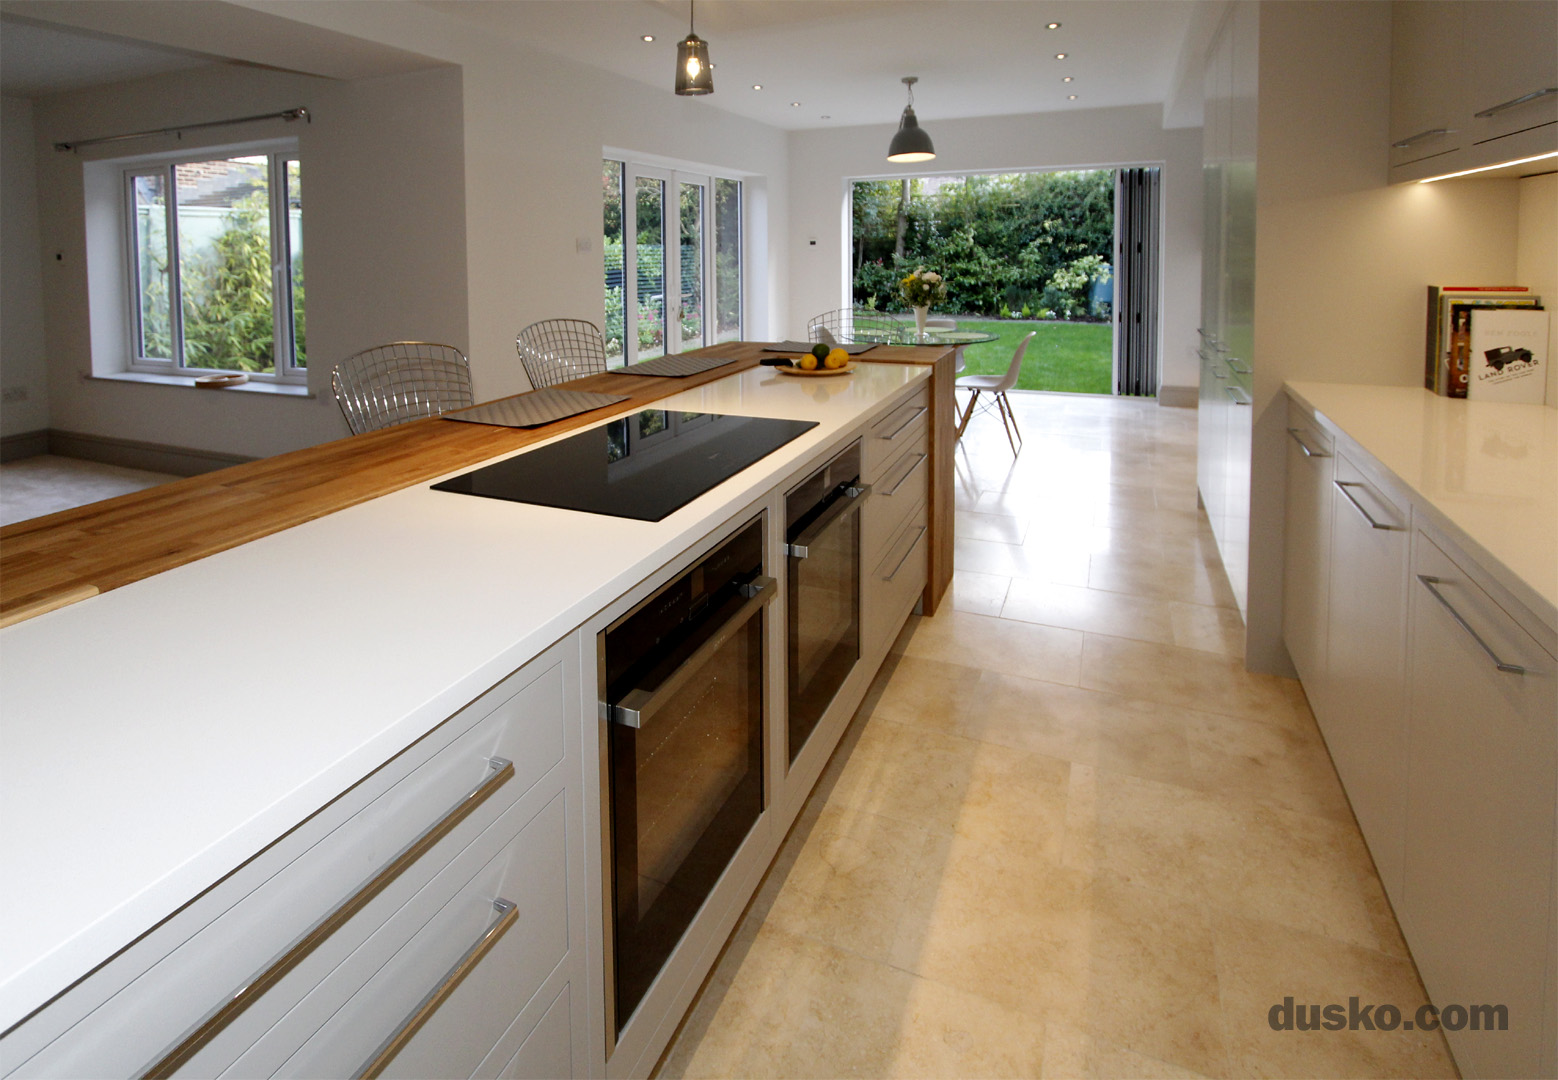 Contemporary Open Plan Kitchen and Dining Area in Handforth, Cheshire Neff Ovens